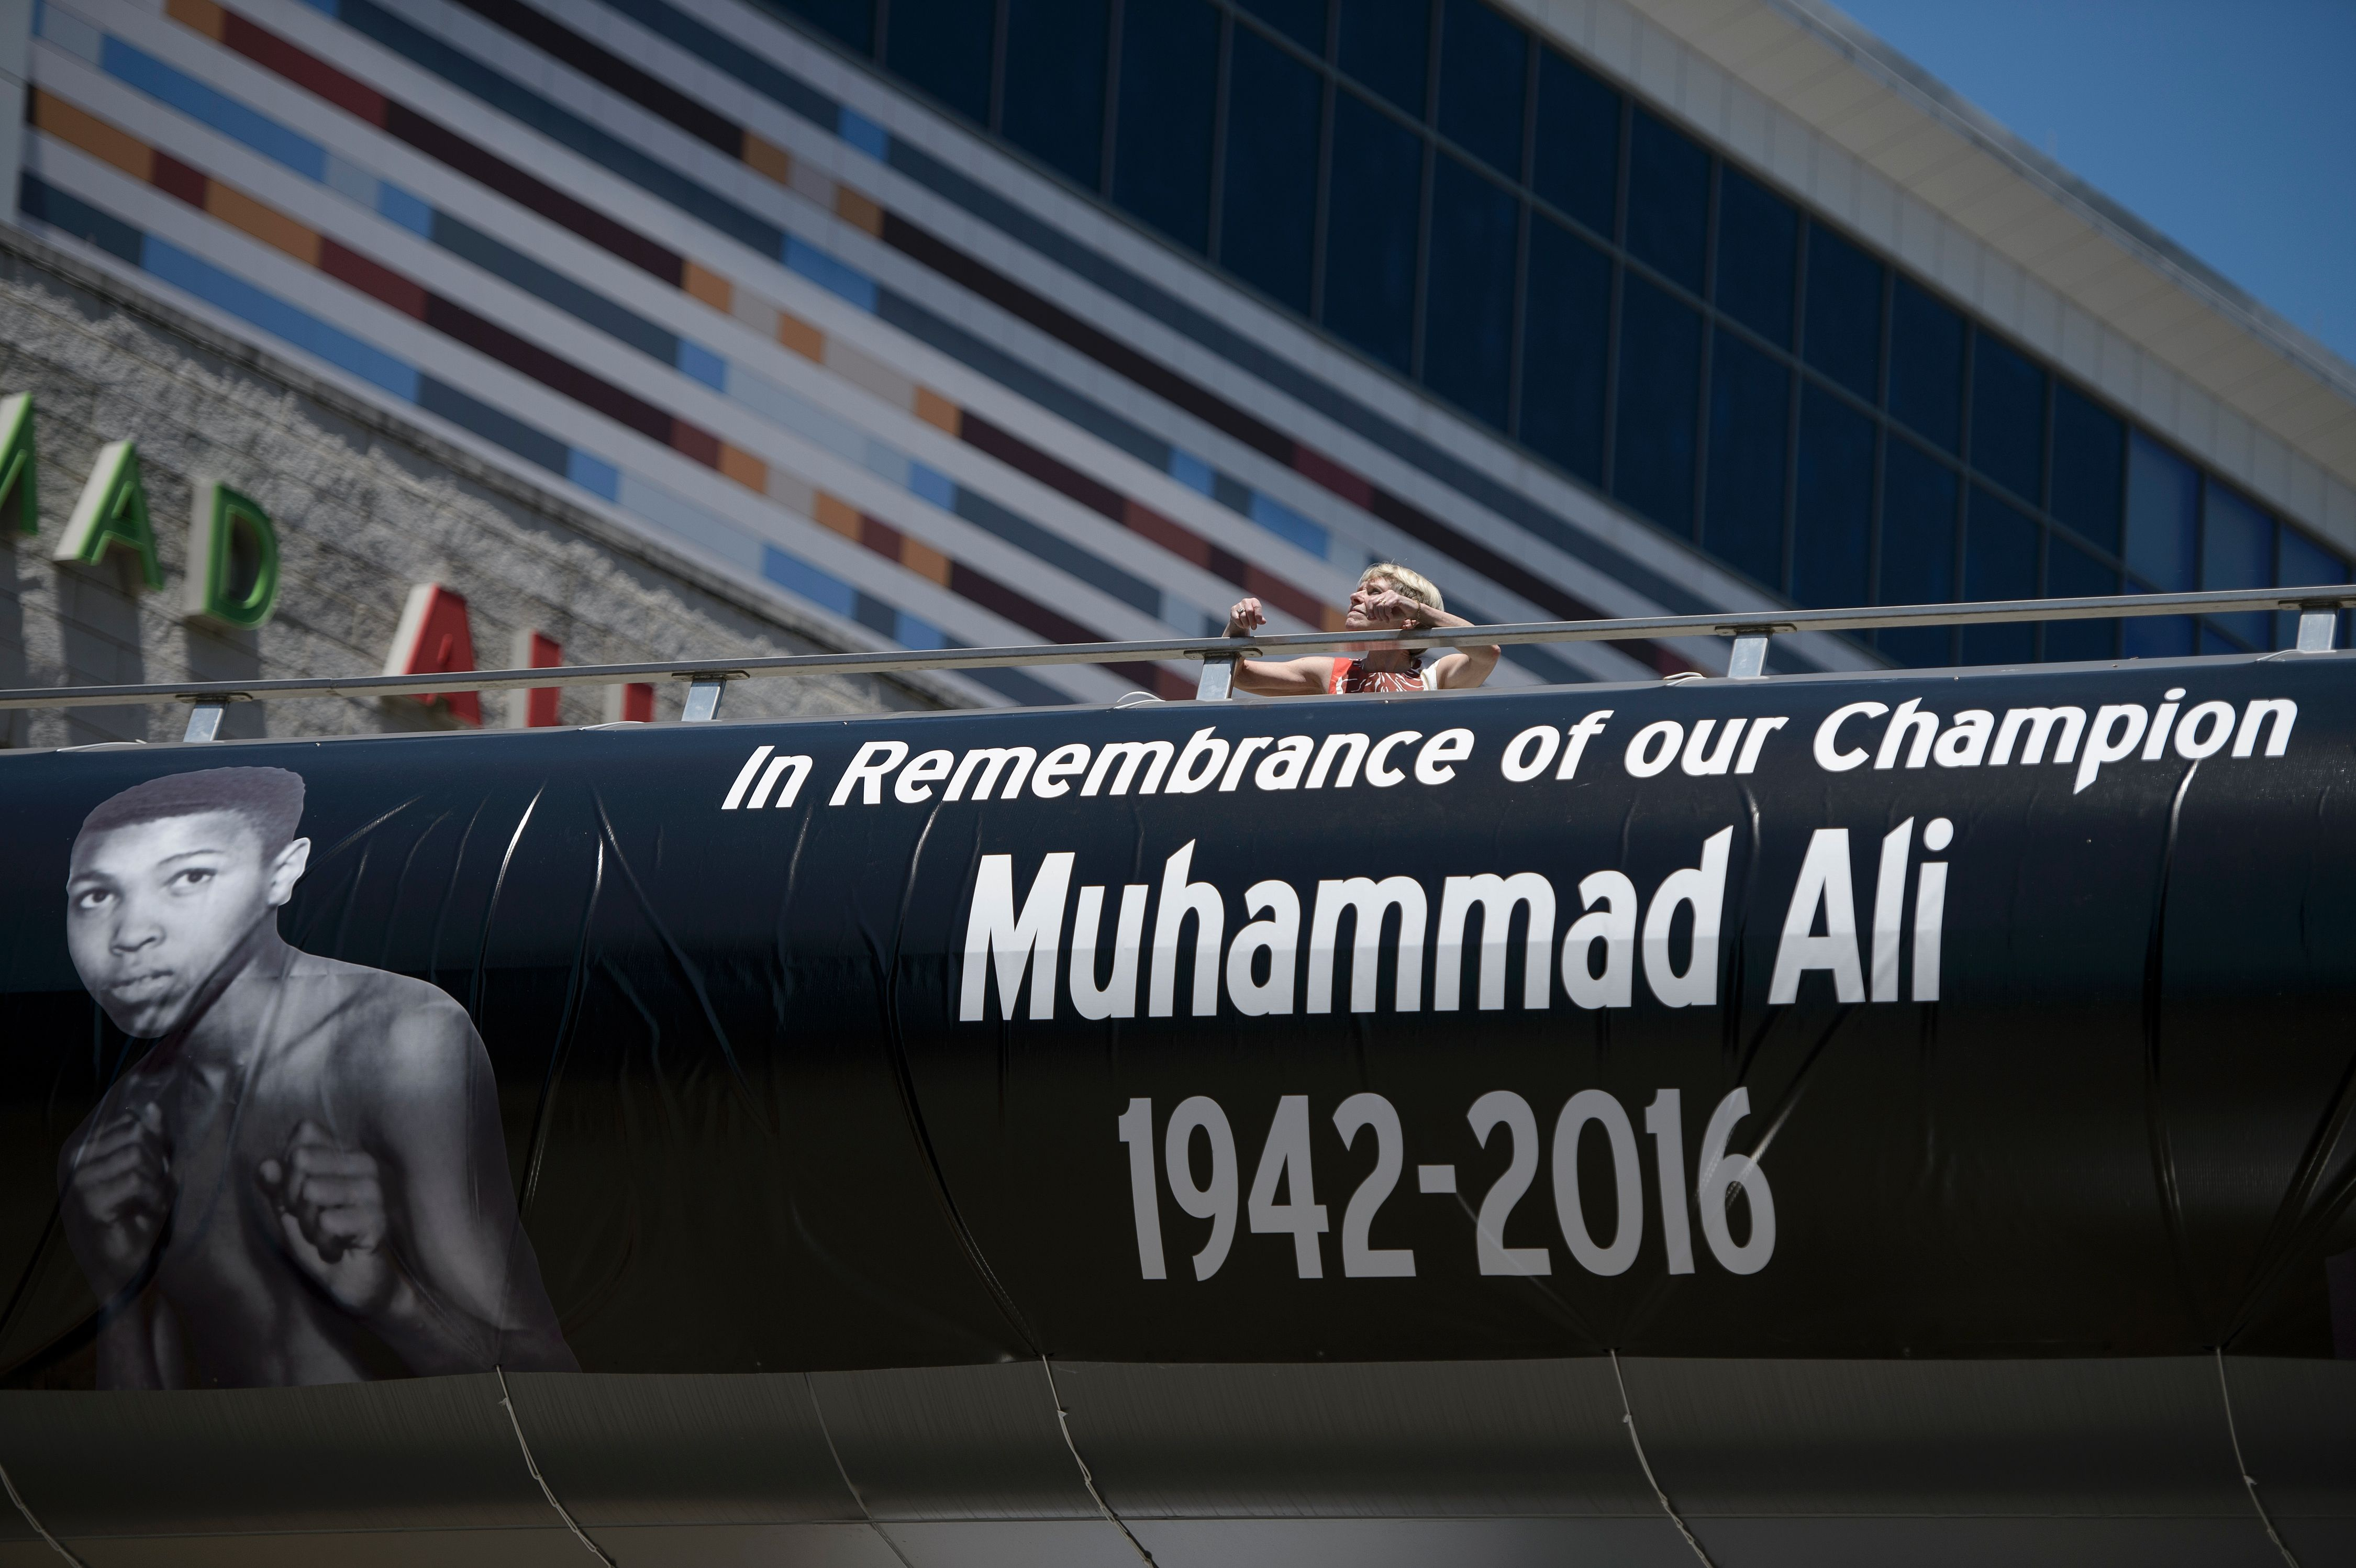 A woman walks on a pedestrian bridge from the Muhammad Ali Center June 9, 2016 in Louisville, Kentucky. Two days of funeral ceremonies bidding farewell to Muhammad Ali got underway Thursday with a Muslim prayer service in the Kentucky hometown of the beloved boxing legend and civil rights hero. / AFP / Brendan Smialowski